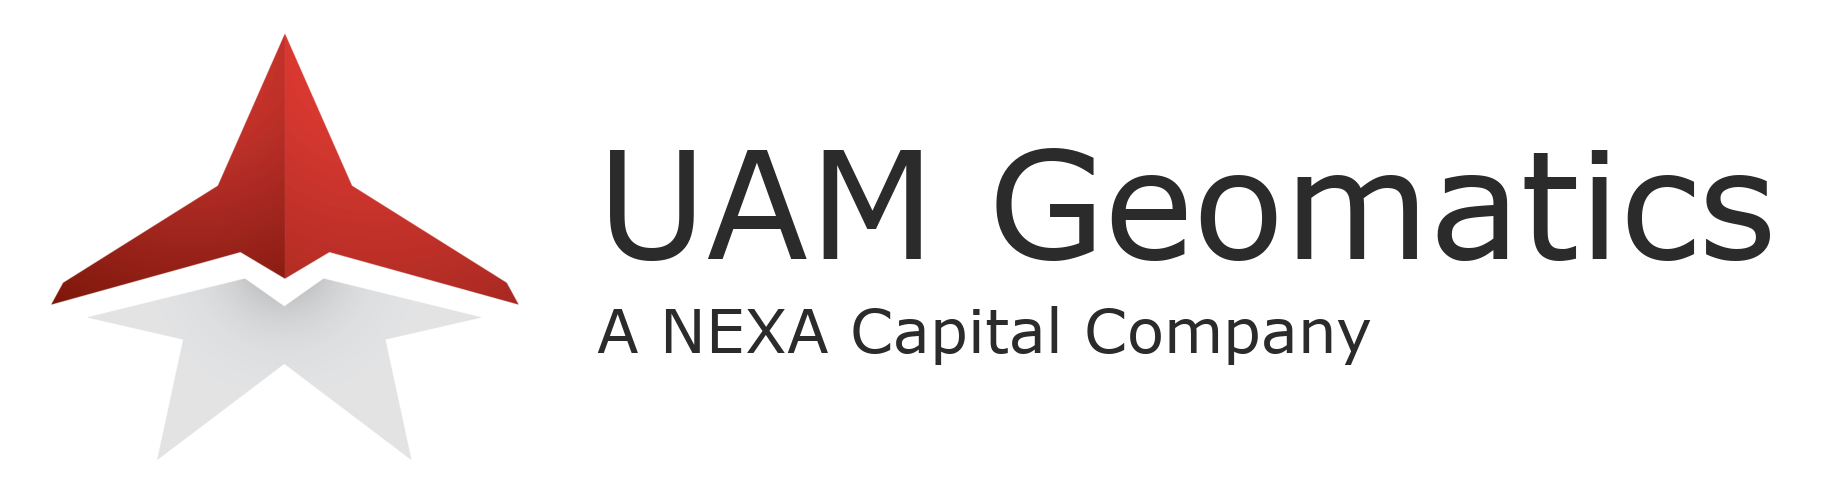 NEXA Advisors and the Vertical Flight Society Announce Equity Partnership in UAM Geomatics, Inc.